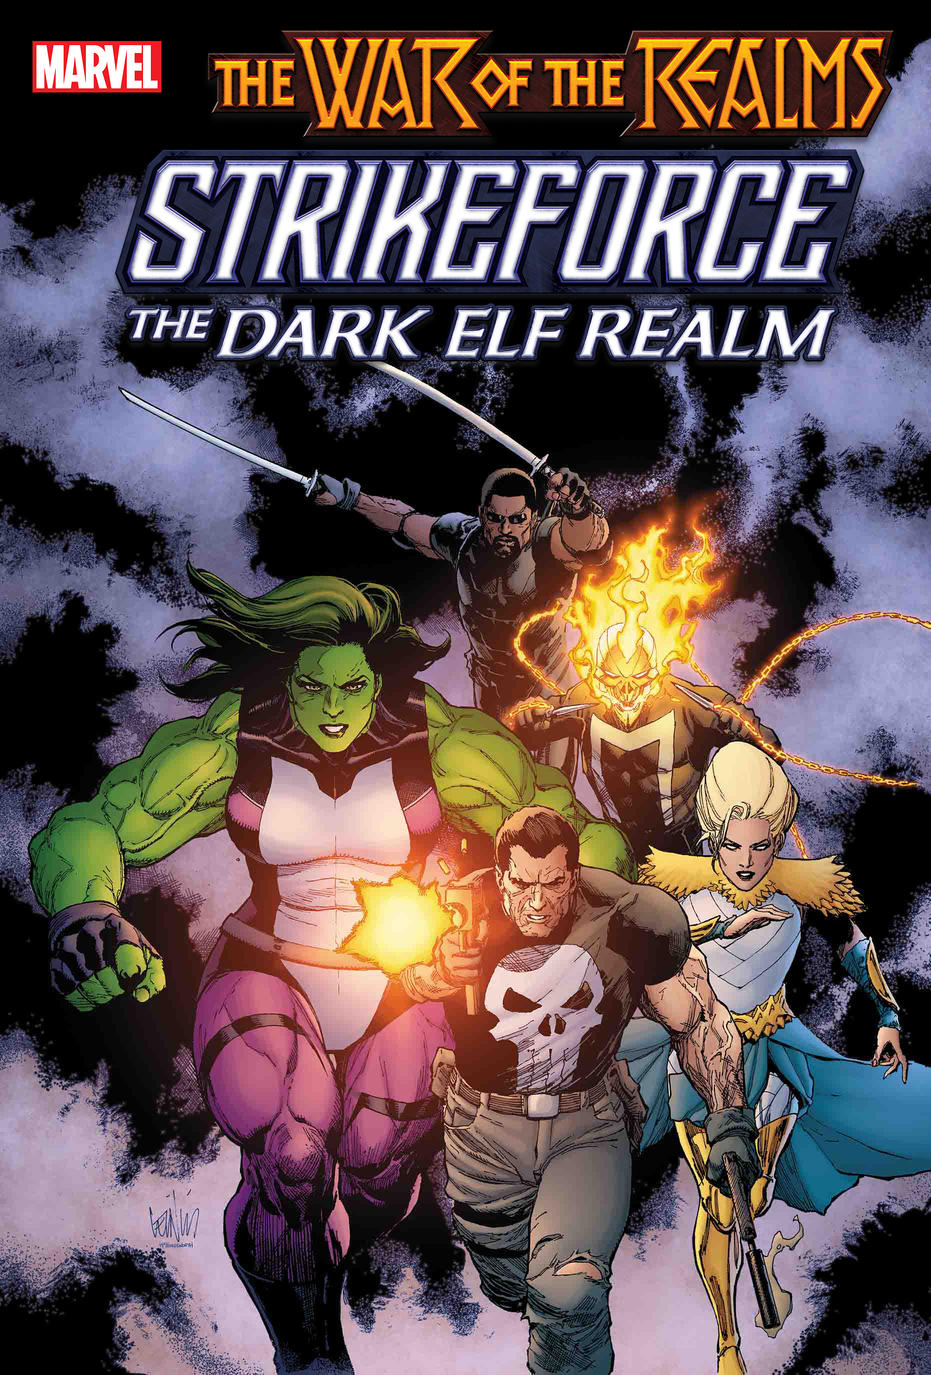 Guerra dos Reinos - War of the Realms - Strikeforce - The Dark Elf Realm - Blog Farofeiros